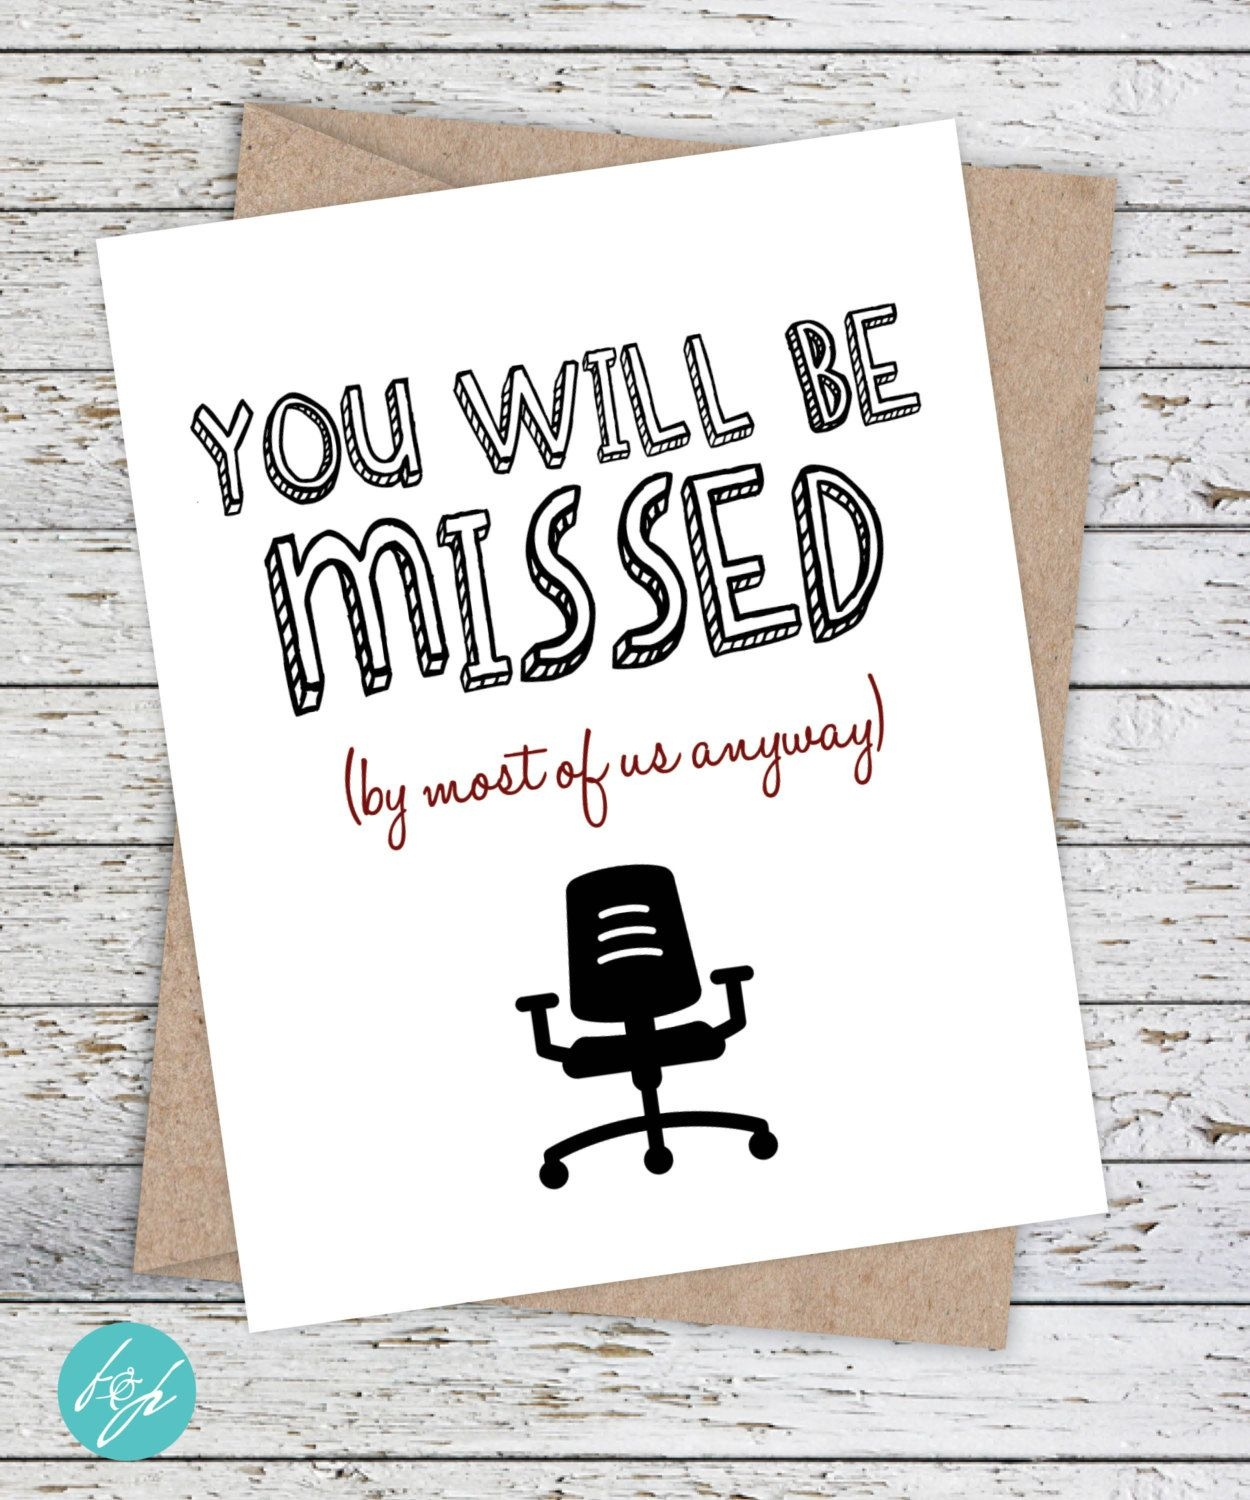 Funny Coworker Card,flairandpaper On Etsy You Will Be Missed (By - Free Printable Farewell Card For Coworker